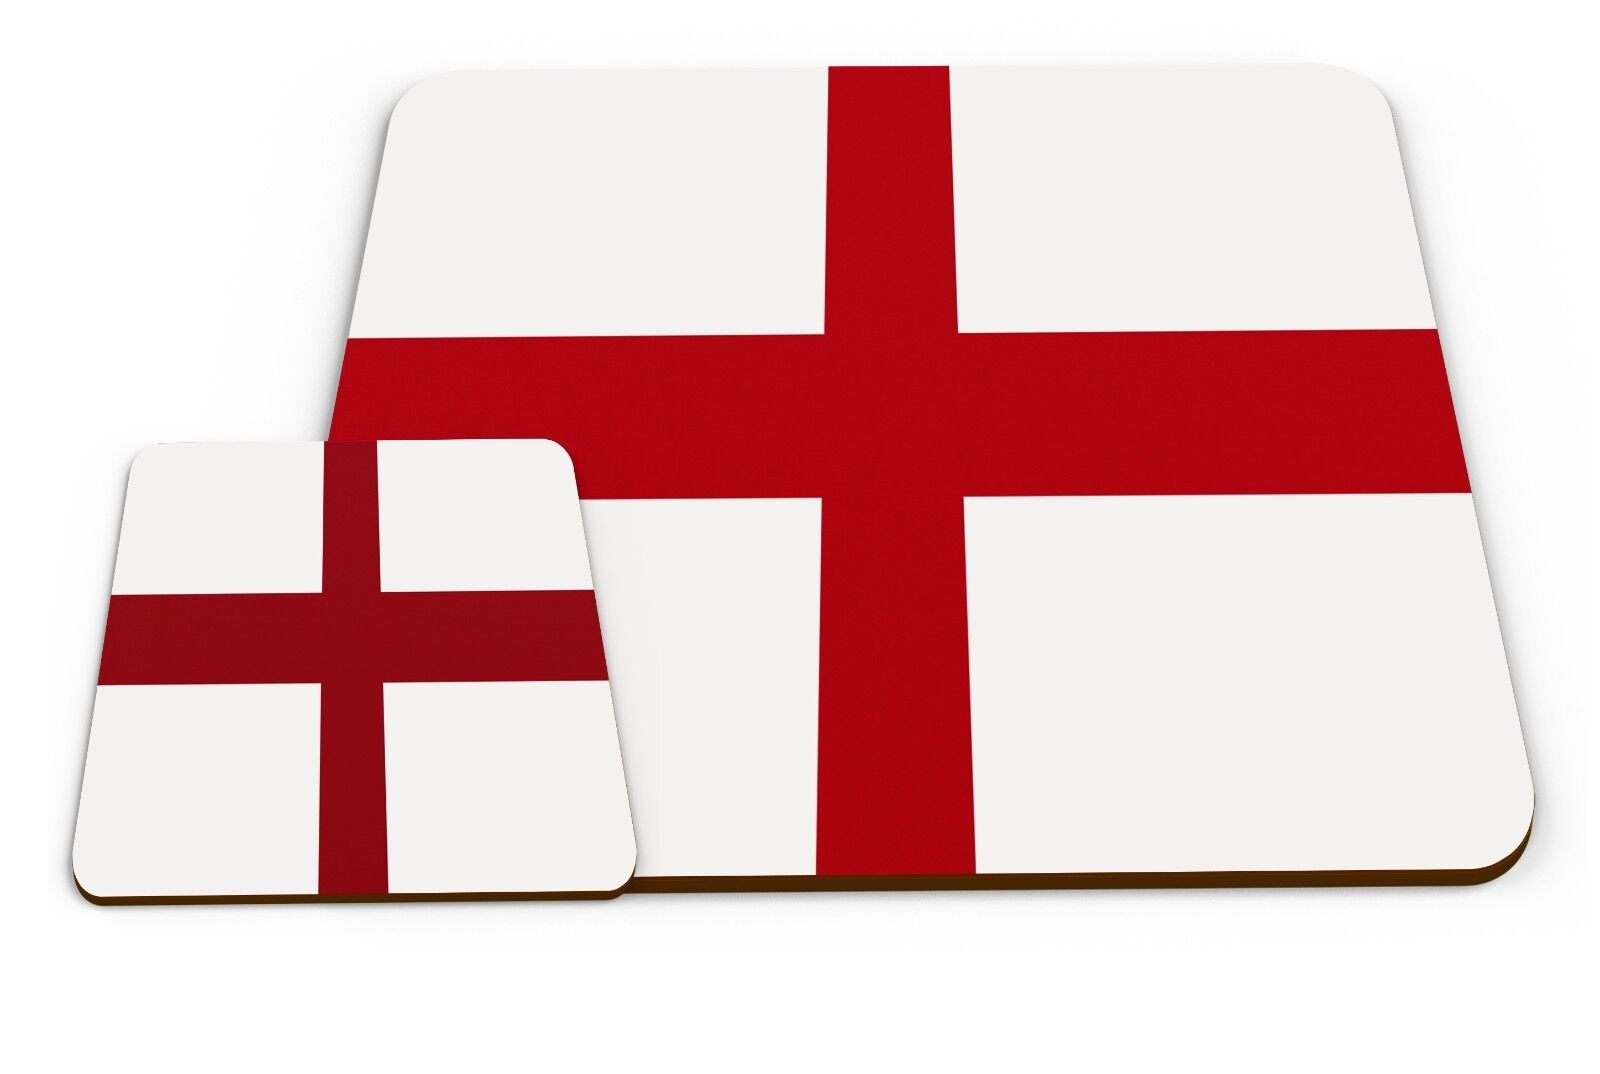 Set Of Country Flags - ENGLAND Glossy Placemat & Mug Coaster Variation